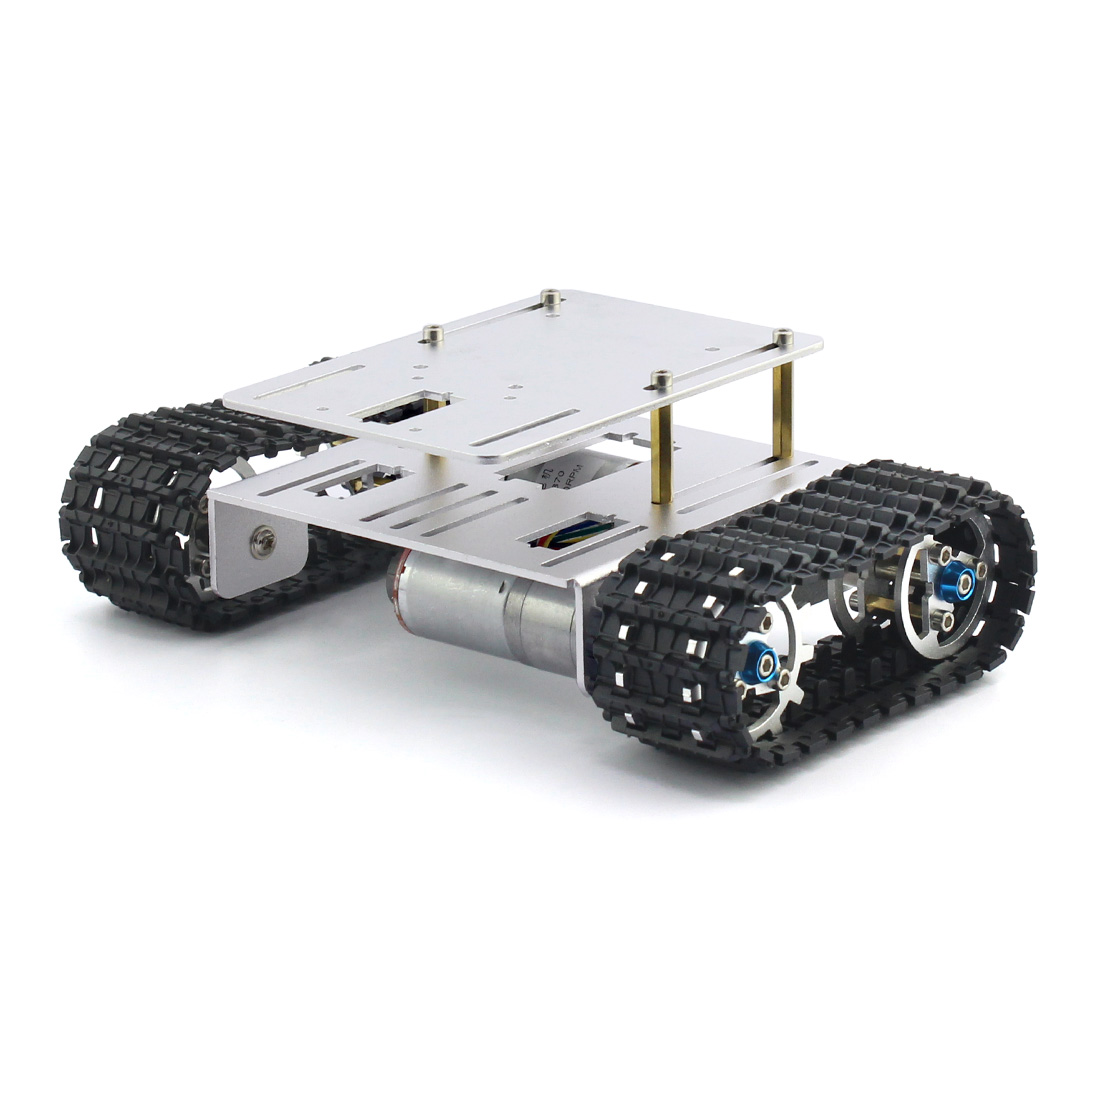 DIY Crawler Robot Chassis Aluminium Alloy Tank Car Chassis Bottom Intelligent Toy For RC Robotic Parts F23428 83mm rubber wheels tire intelligent tracking car chassis diy robot toy car accessories